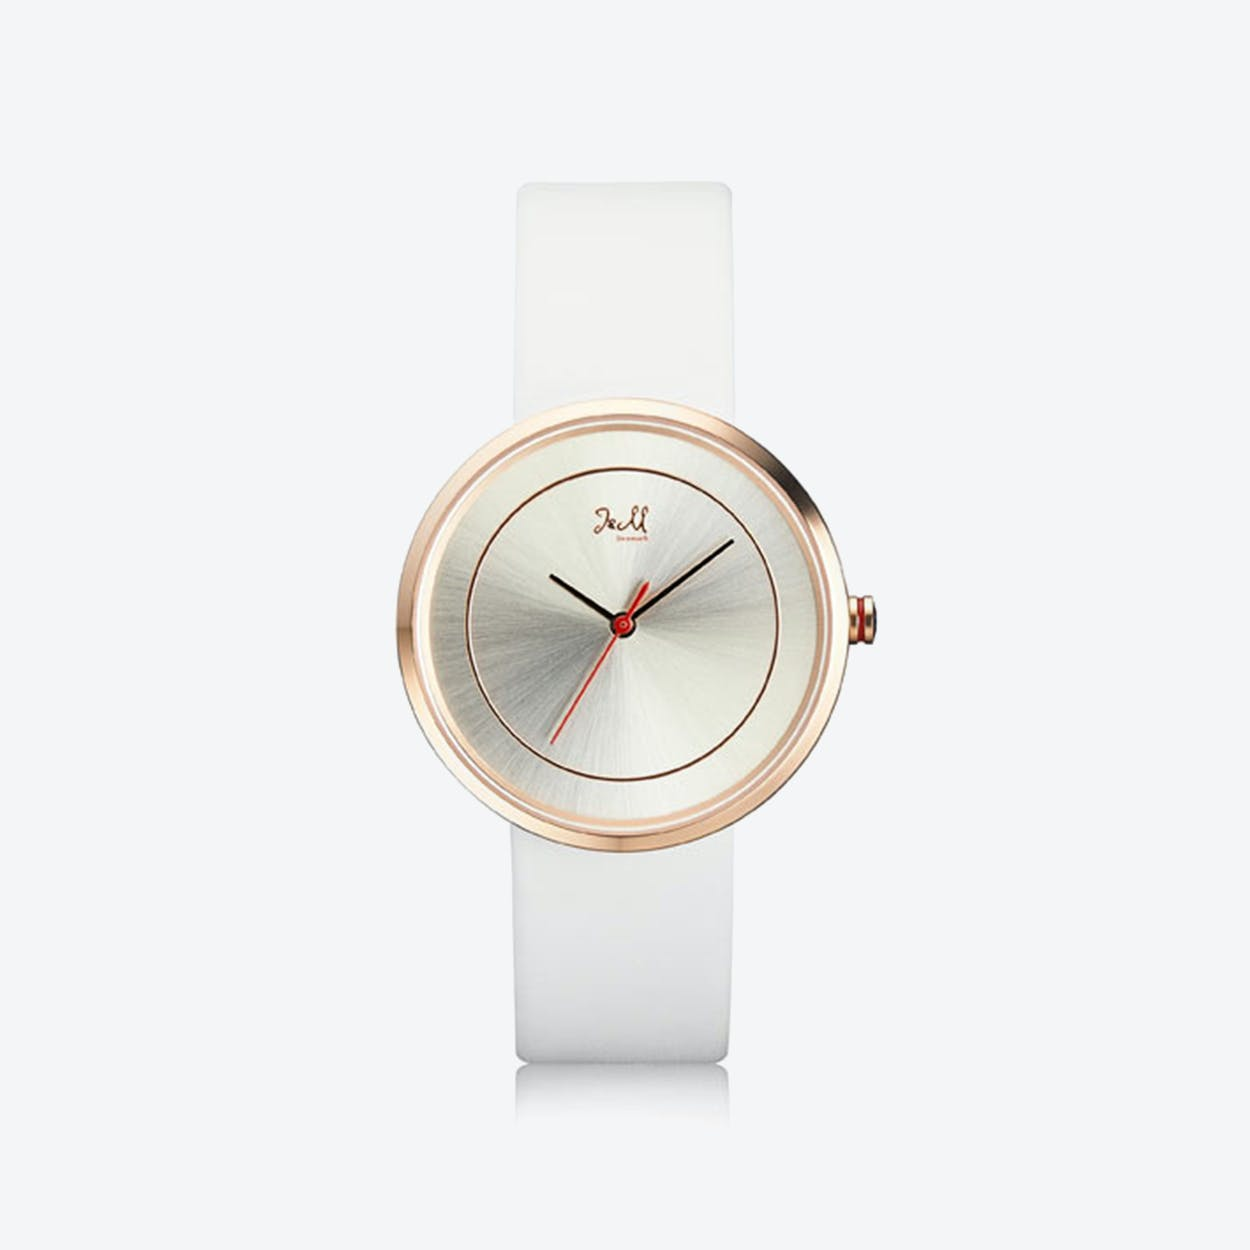 J&M Watch M Nordic360 W1 in Black with White Leather Strap